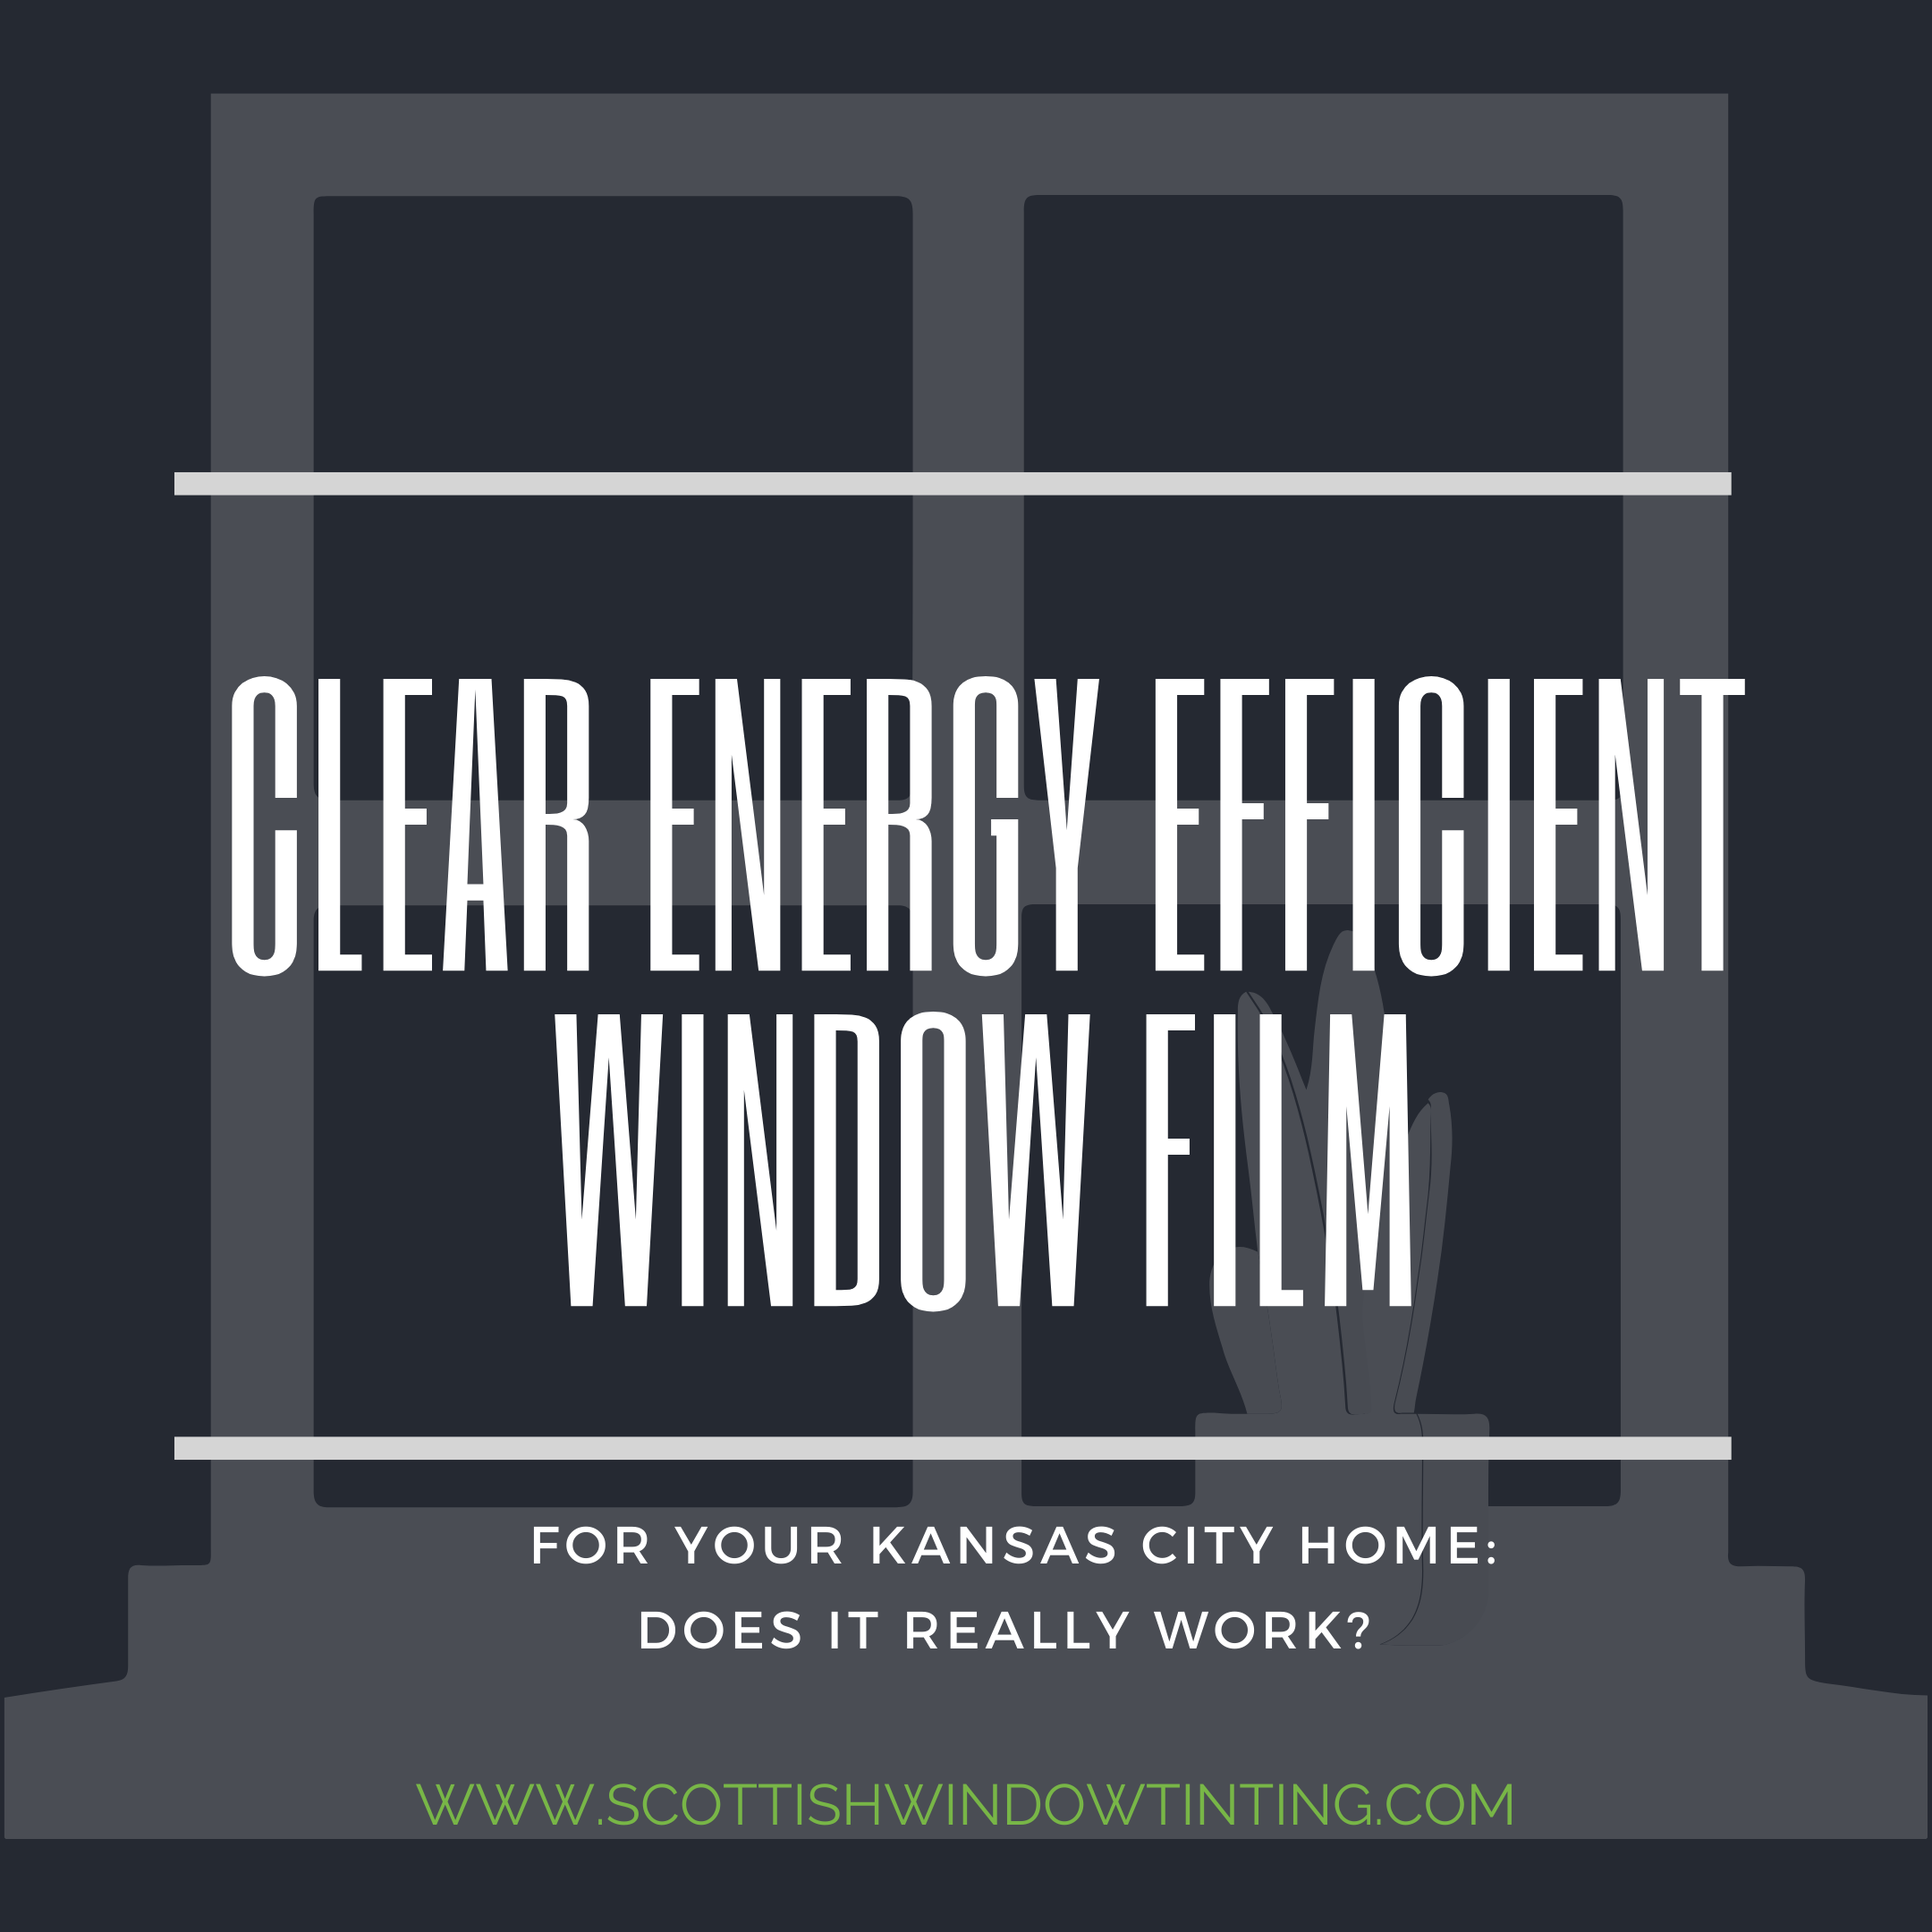 Clear Energy Efficient Window Film for your Kansas City Home: Does It Really Work?